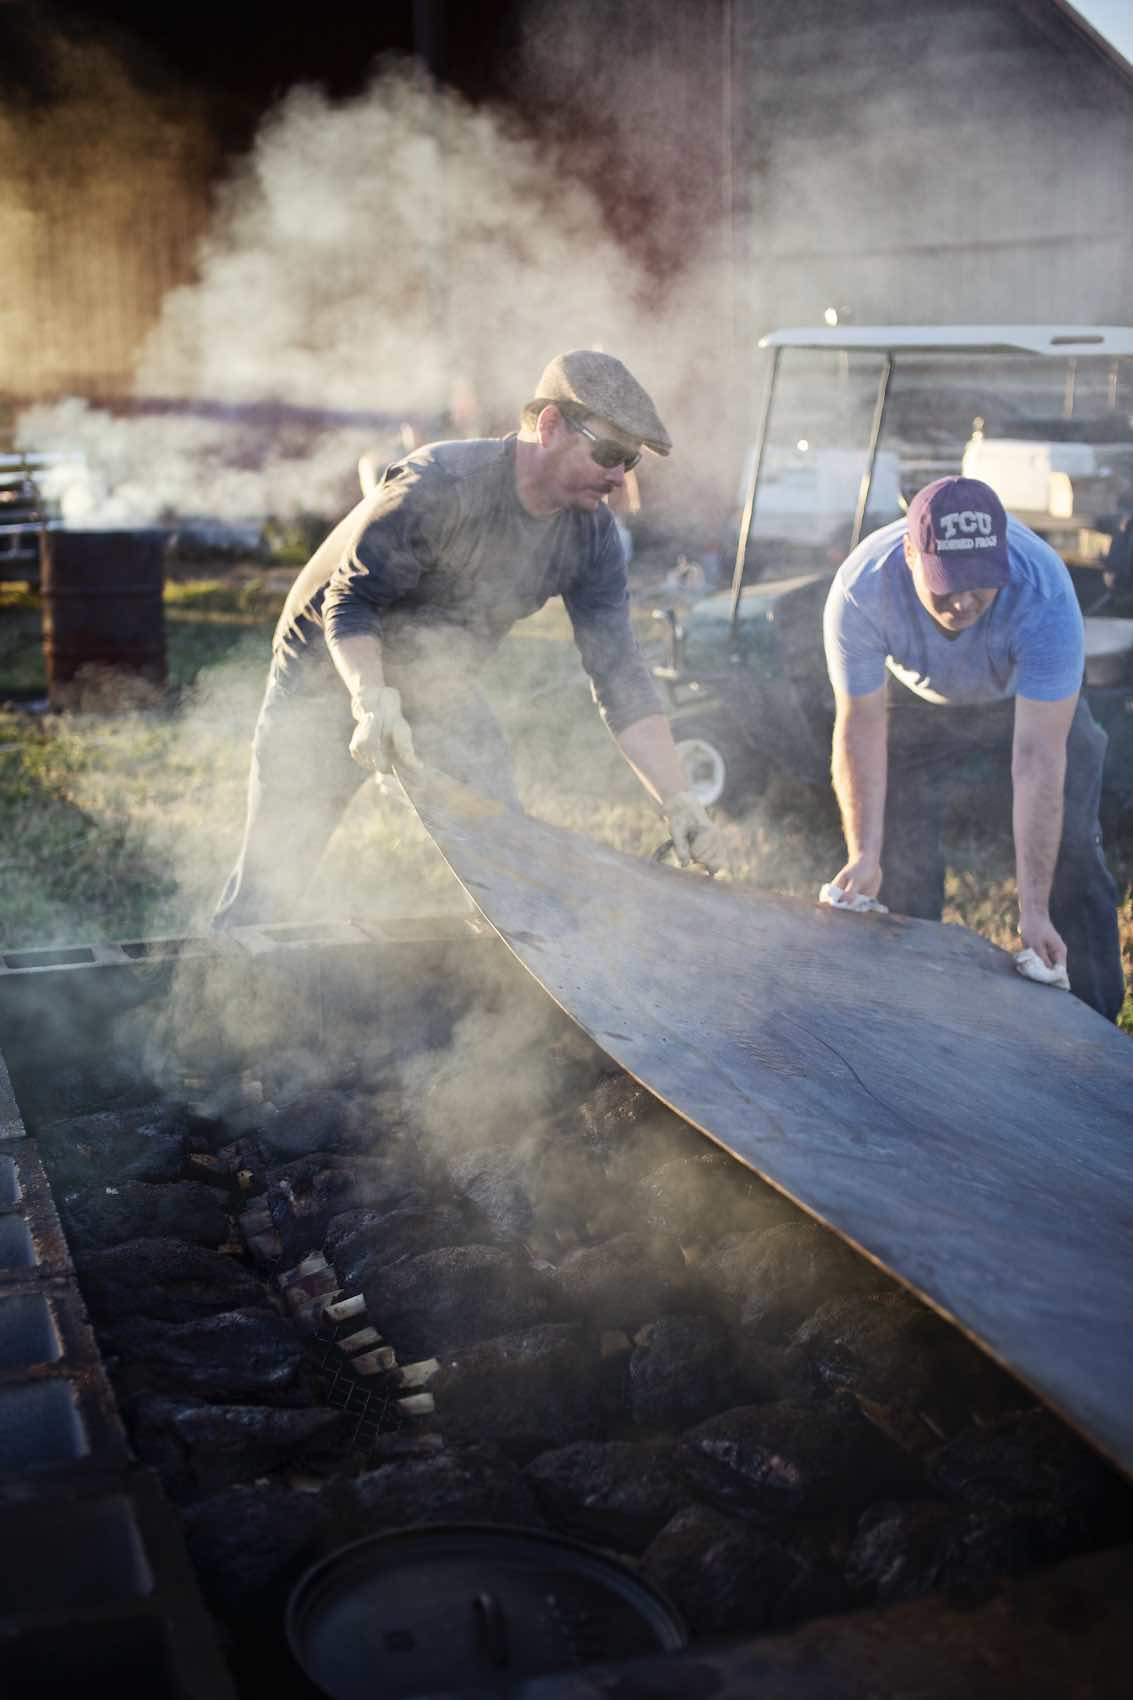 Jody Horton Photography - Men work together to uncover large outdoor barbecue pit.